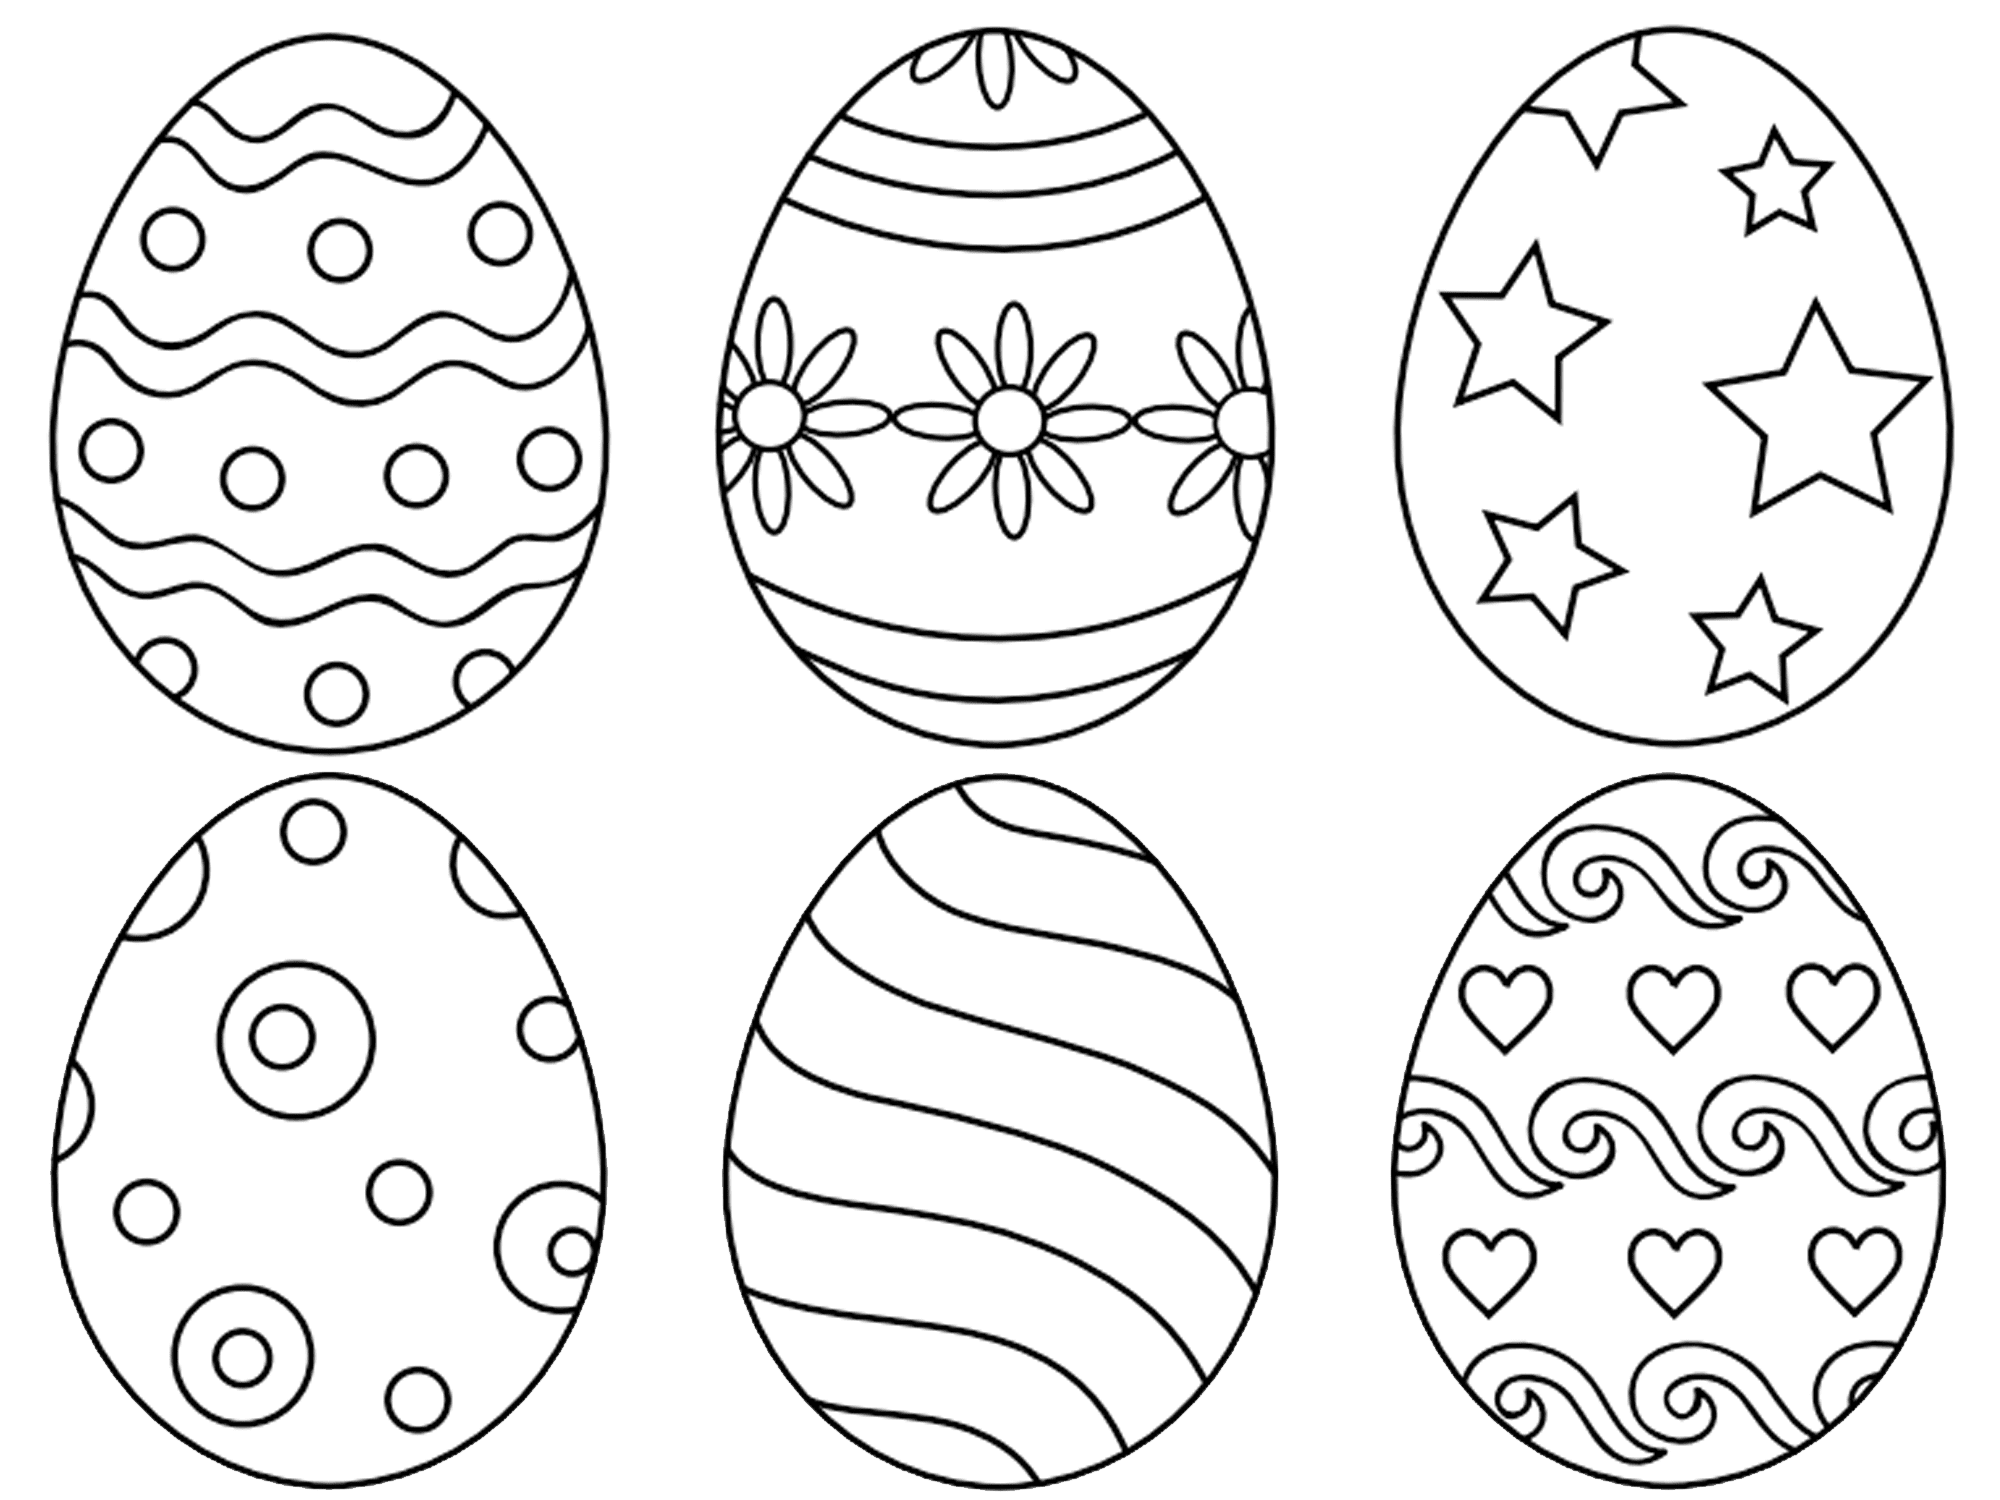 217 Free Printable Easter Egg Coloring Pages